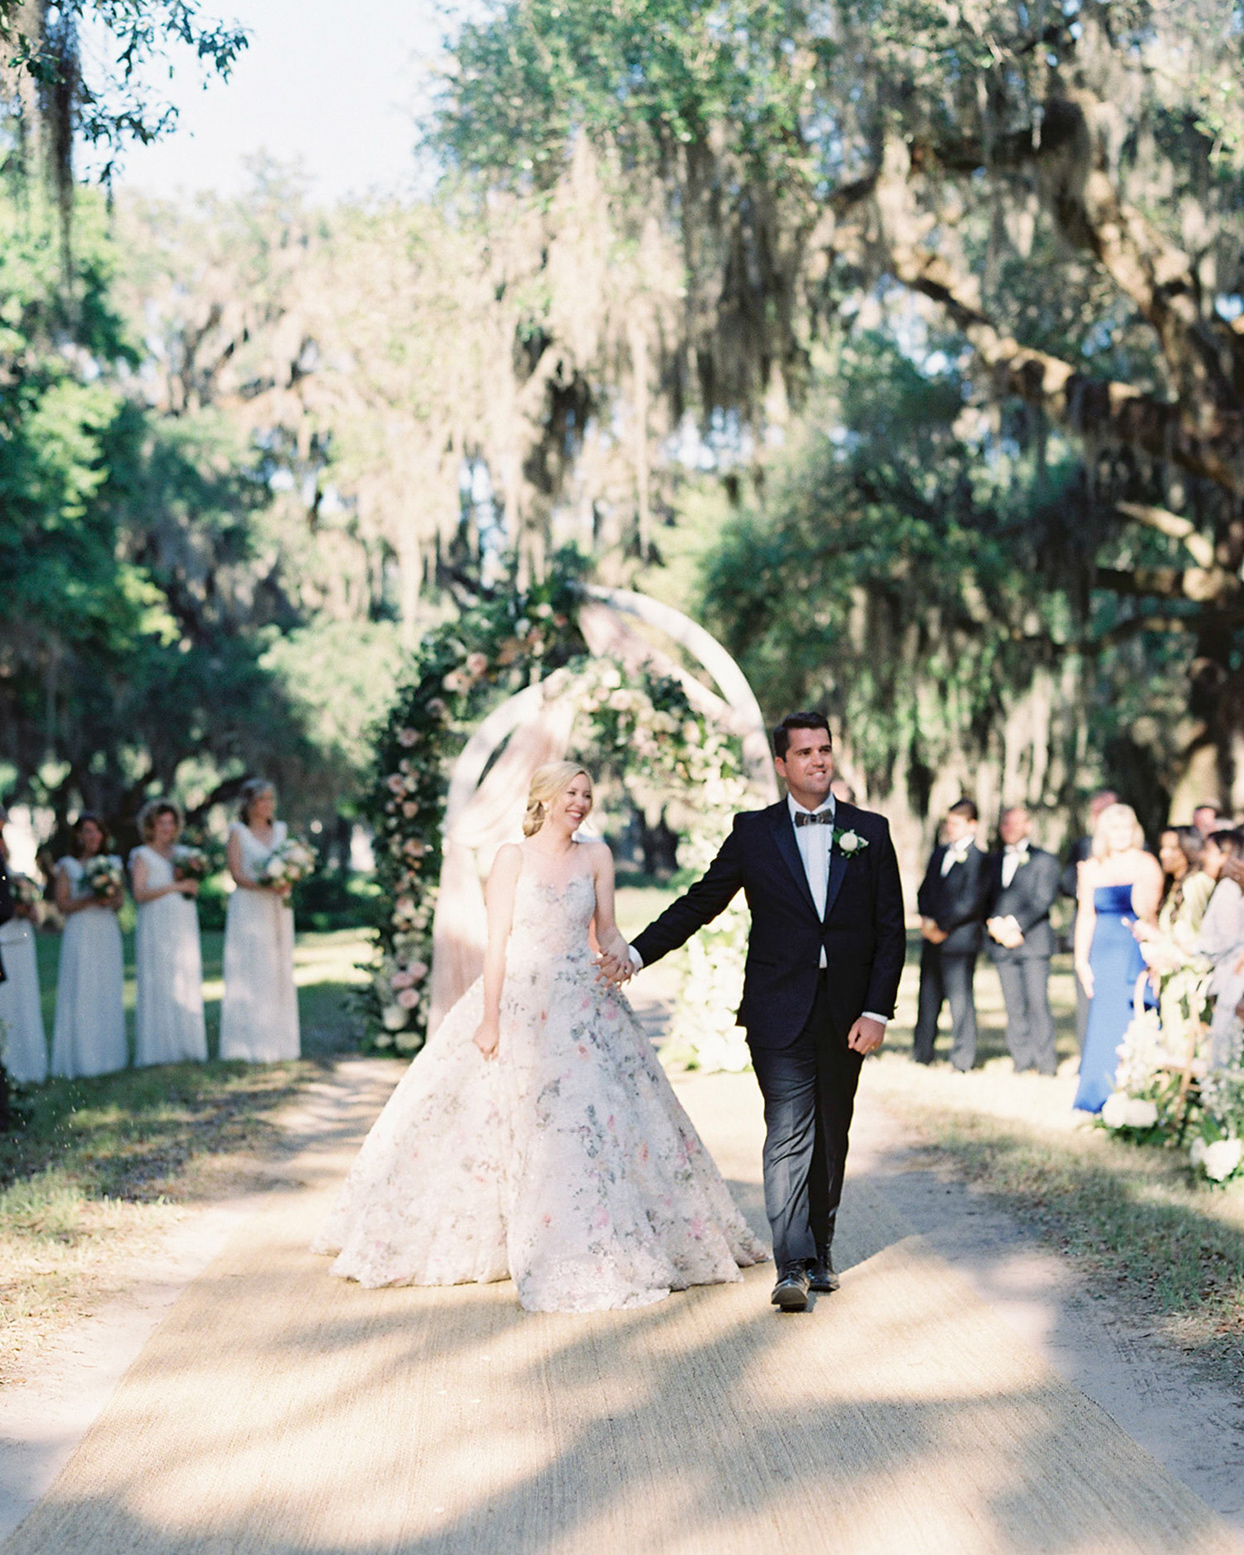 chelsea john wedding ceremony recessional bride and groom